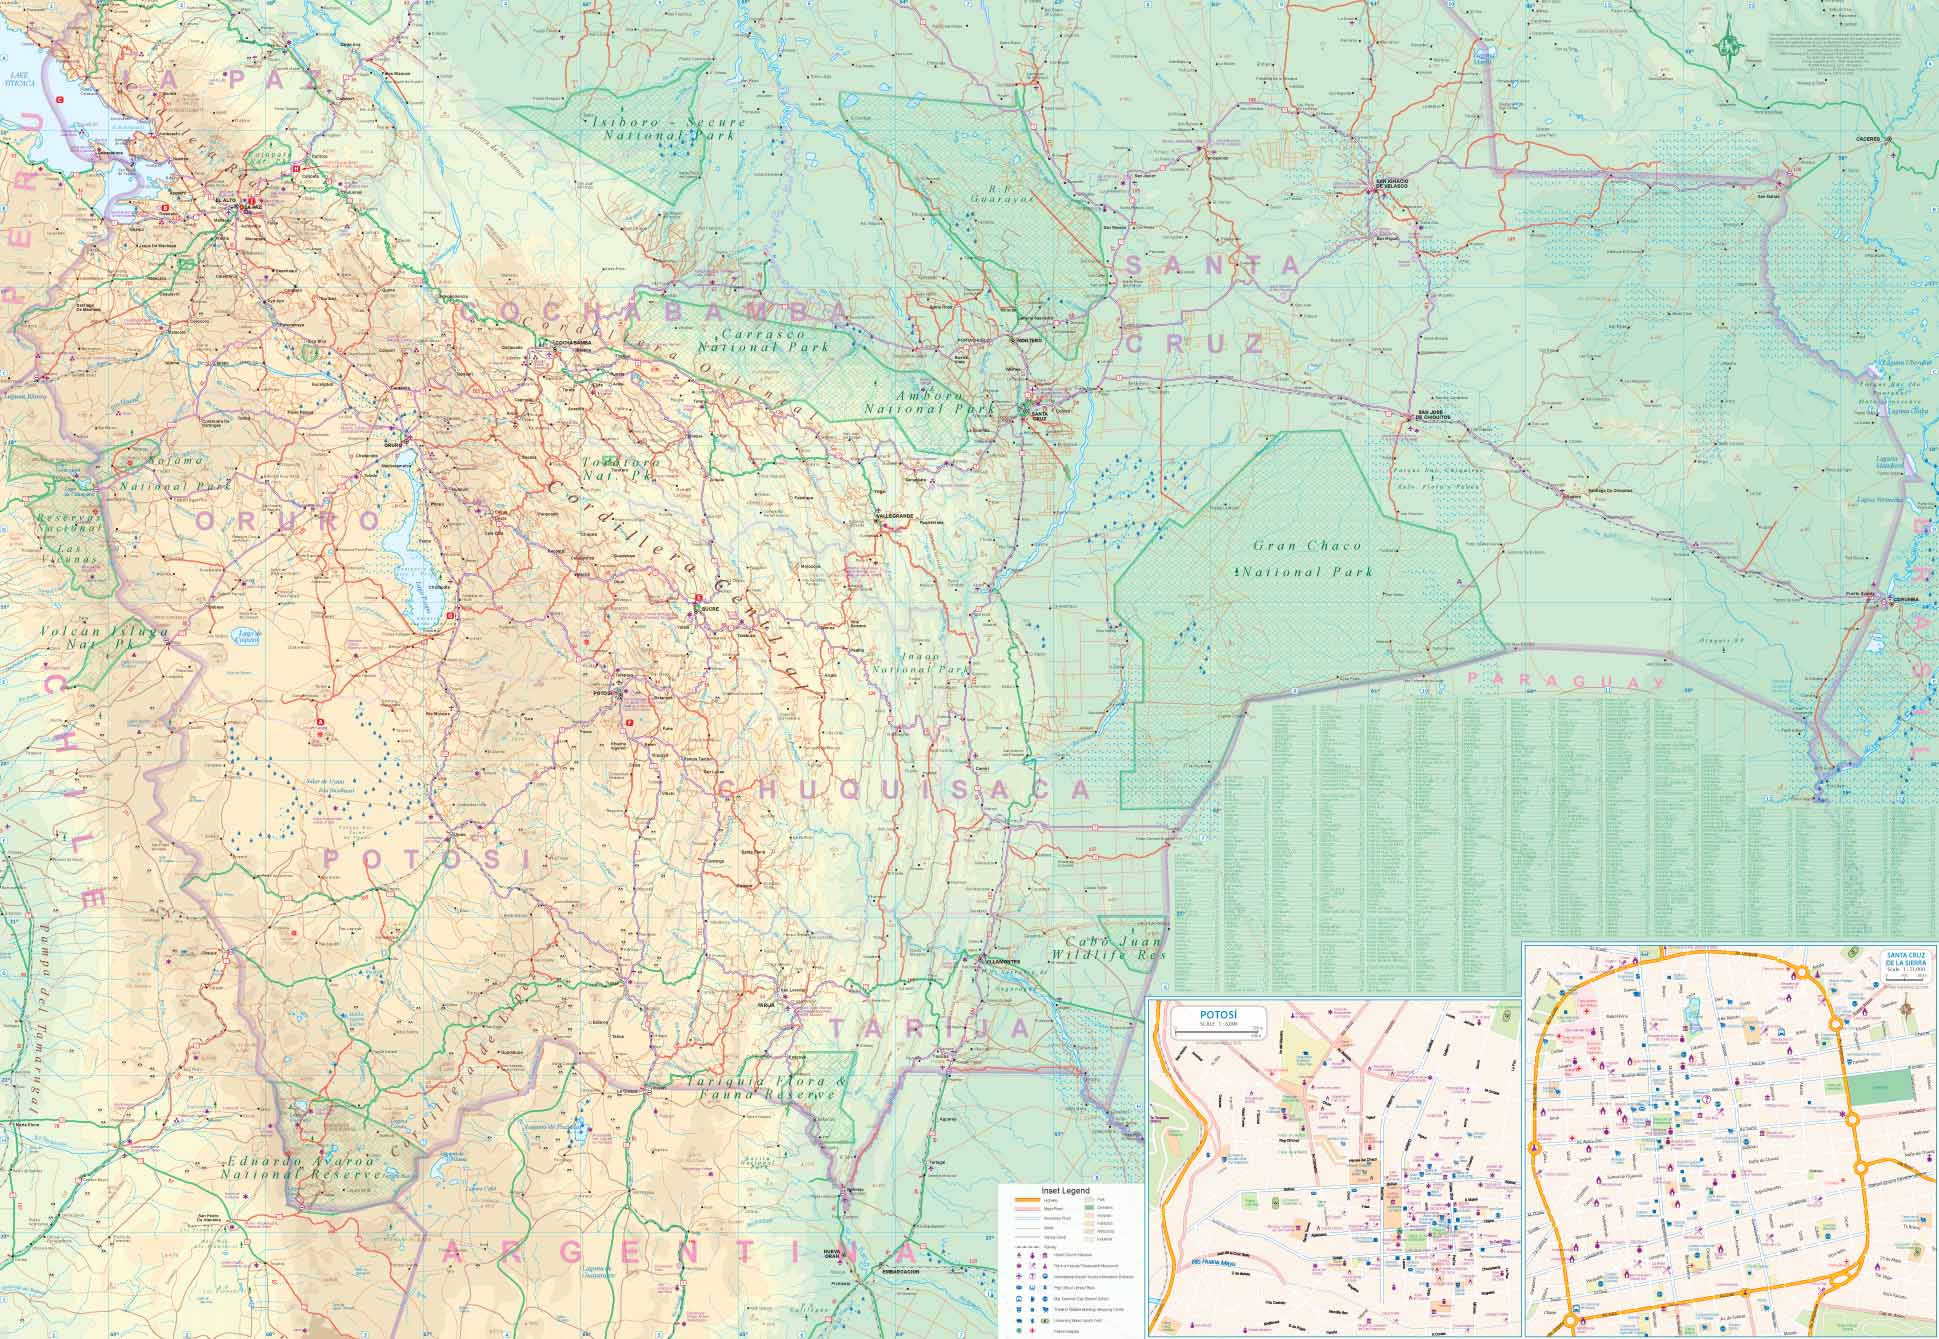 Maps for travel, City Maps, Road Maps, Guides, Globes, Topographic Quebec State Physical Map on